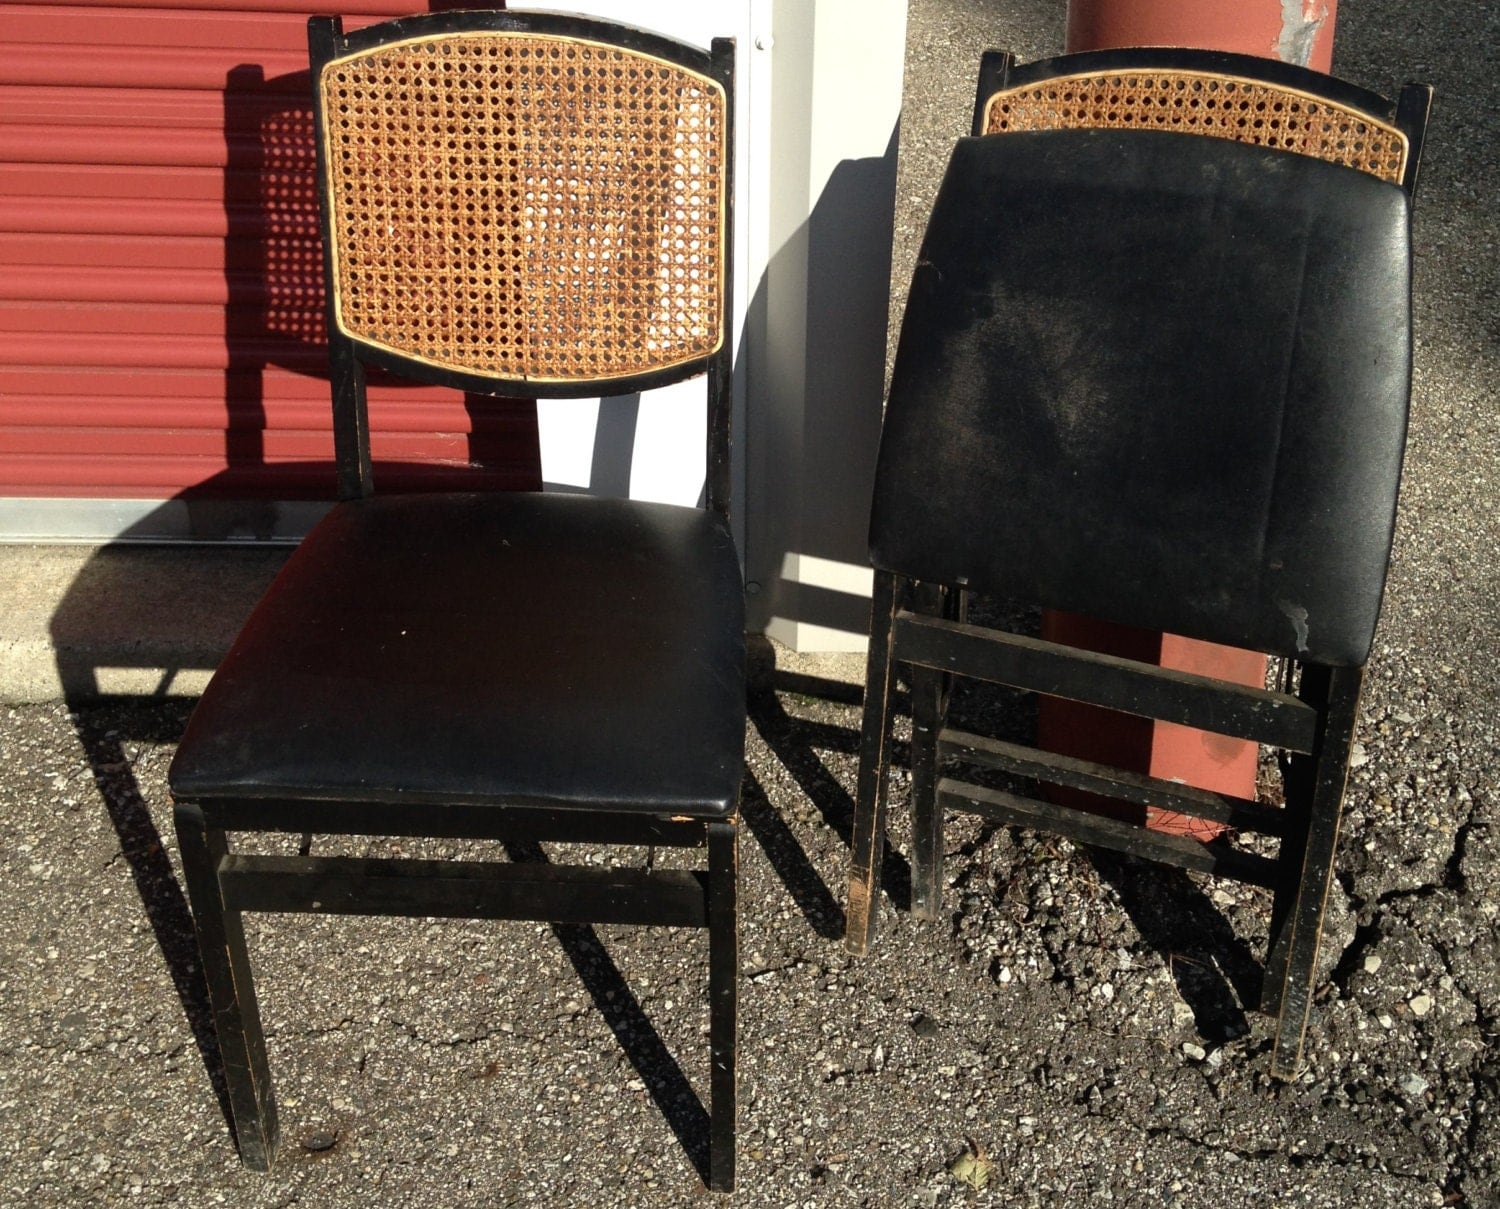 Vintage Black Wooden and Wicker Folding Chairs by Msmichiganroux